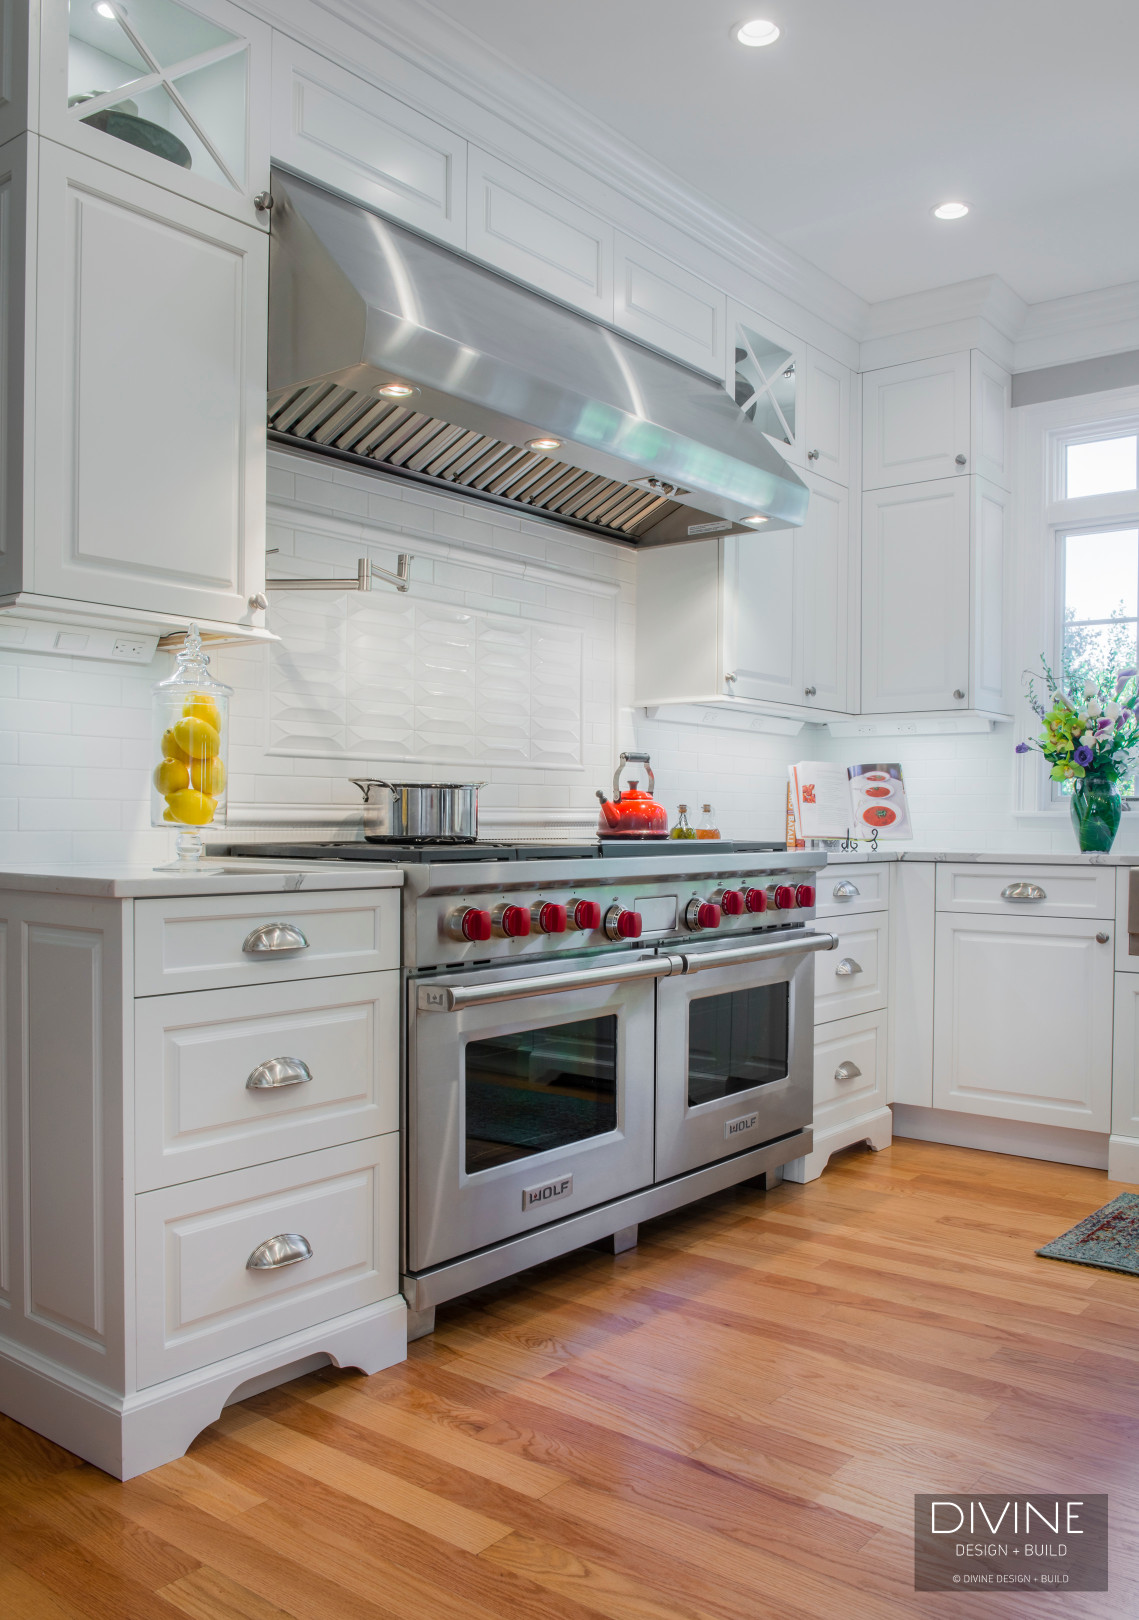 Traditional kitchen with grey and white cabinets. Calacatta countertops and commercial wolf range. Column wine fridge.